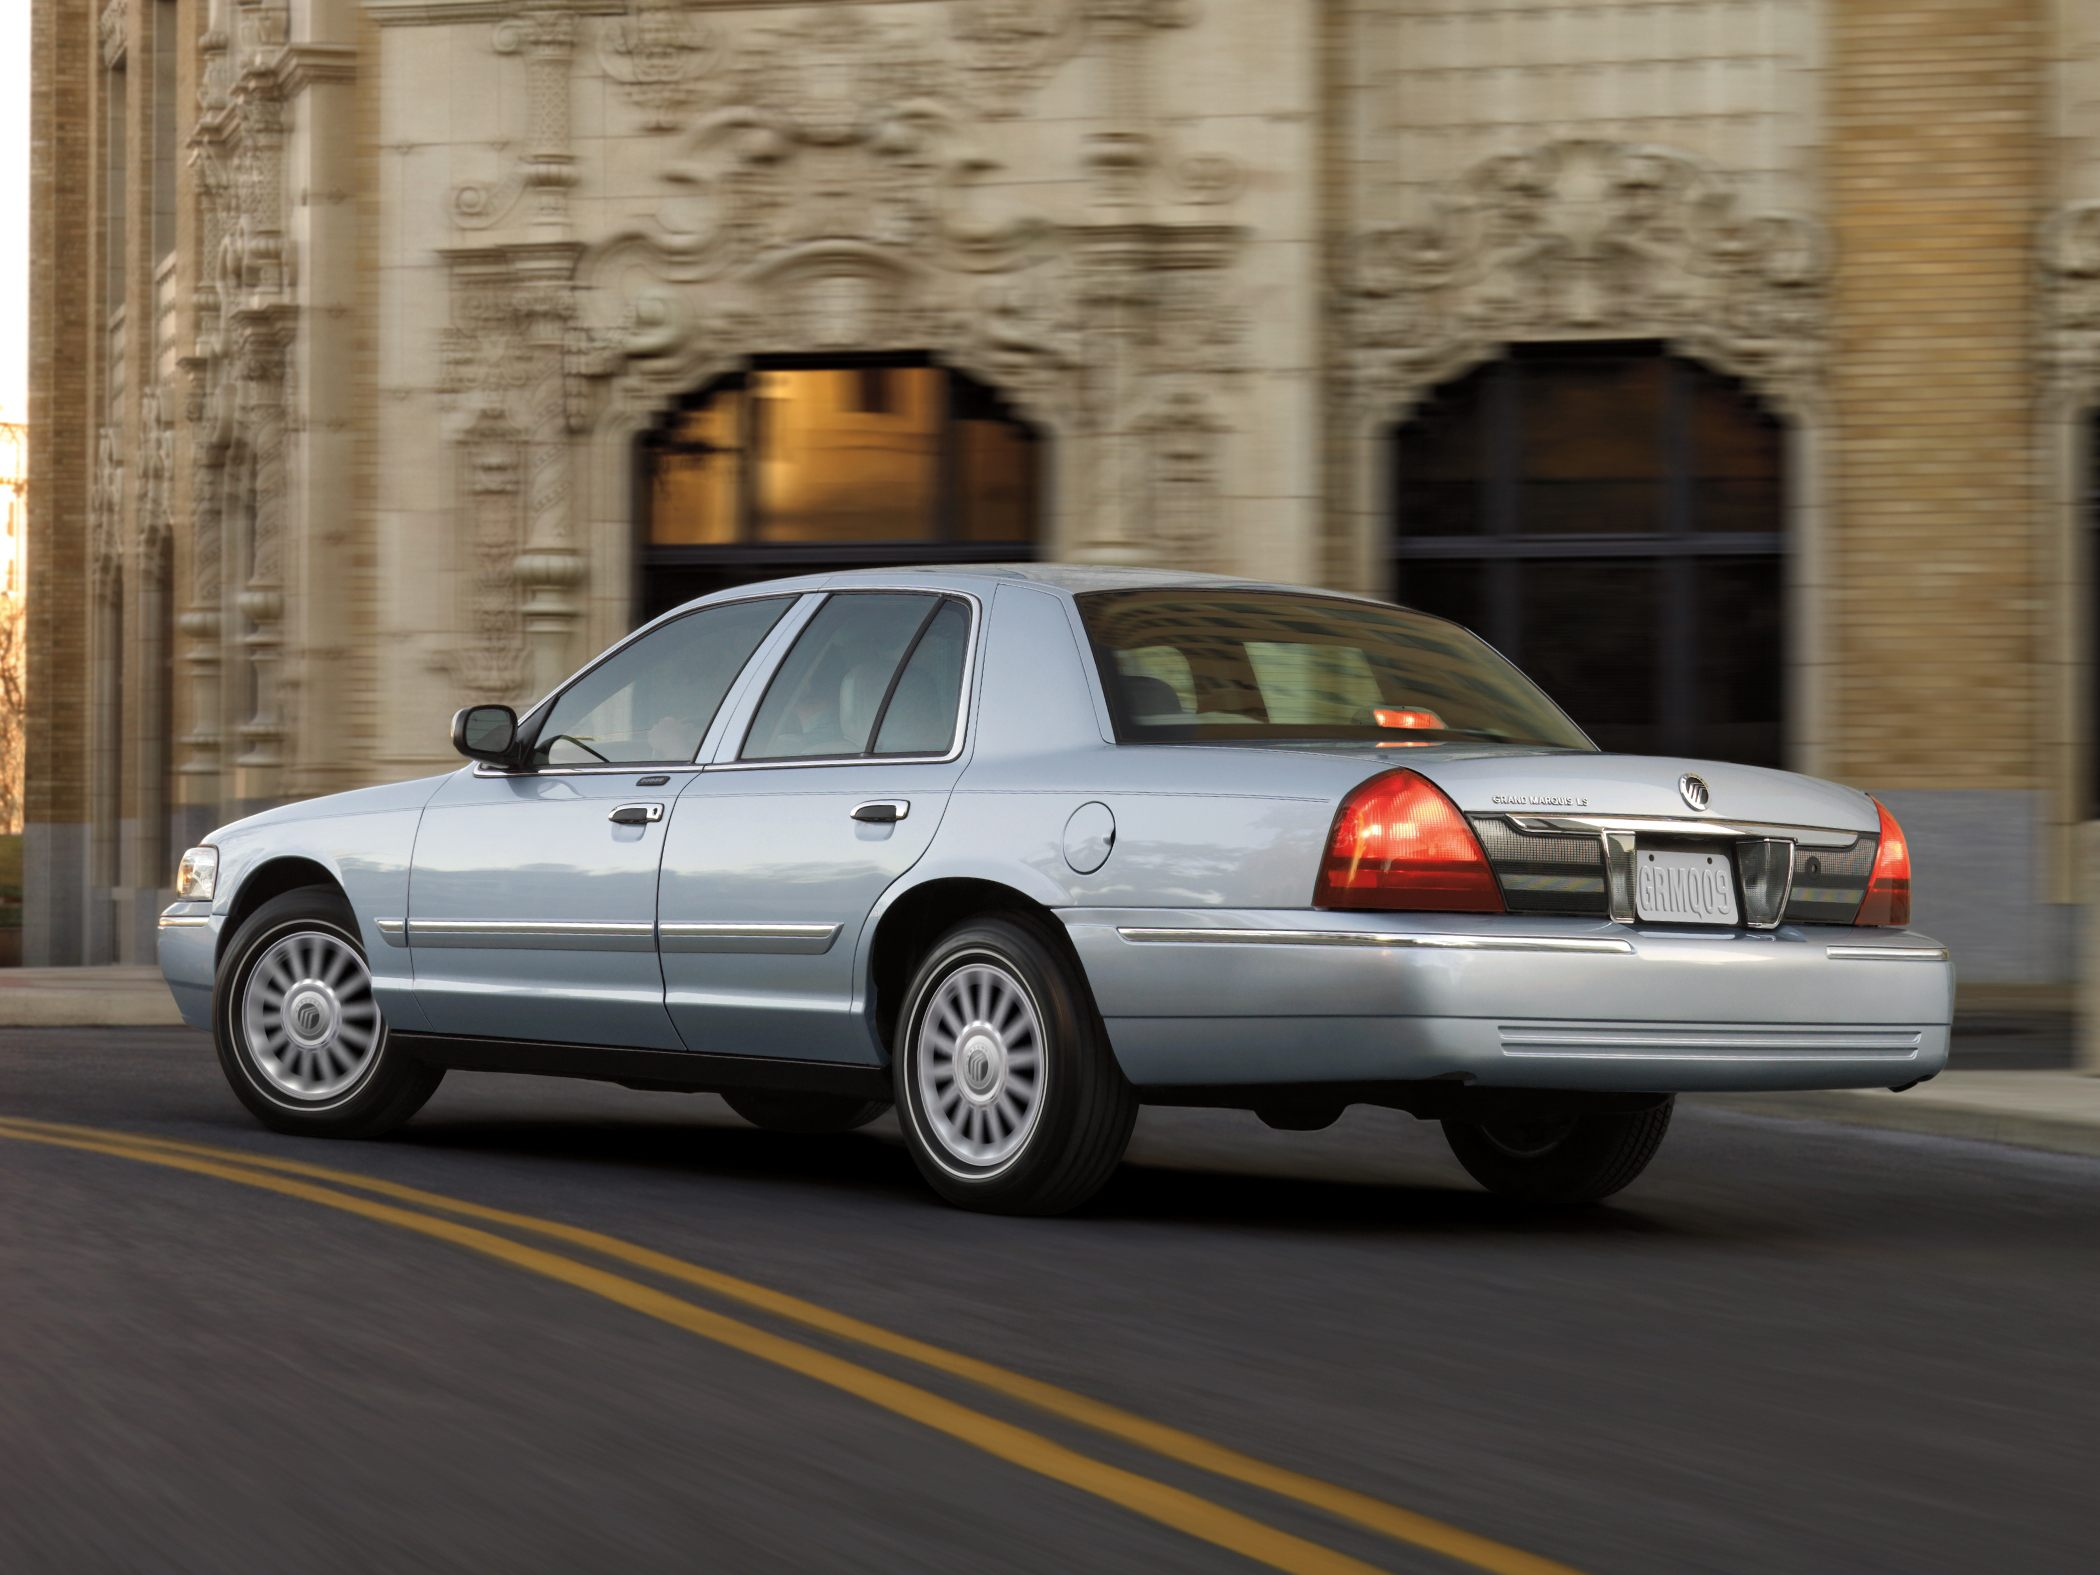 2010 Mercury Grand Marquis Information And Photos